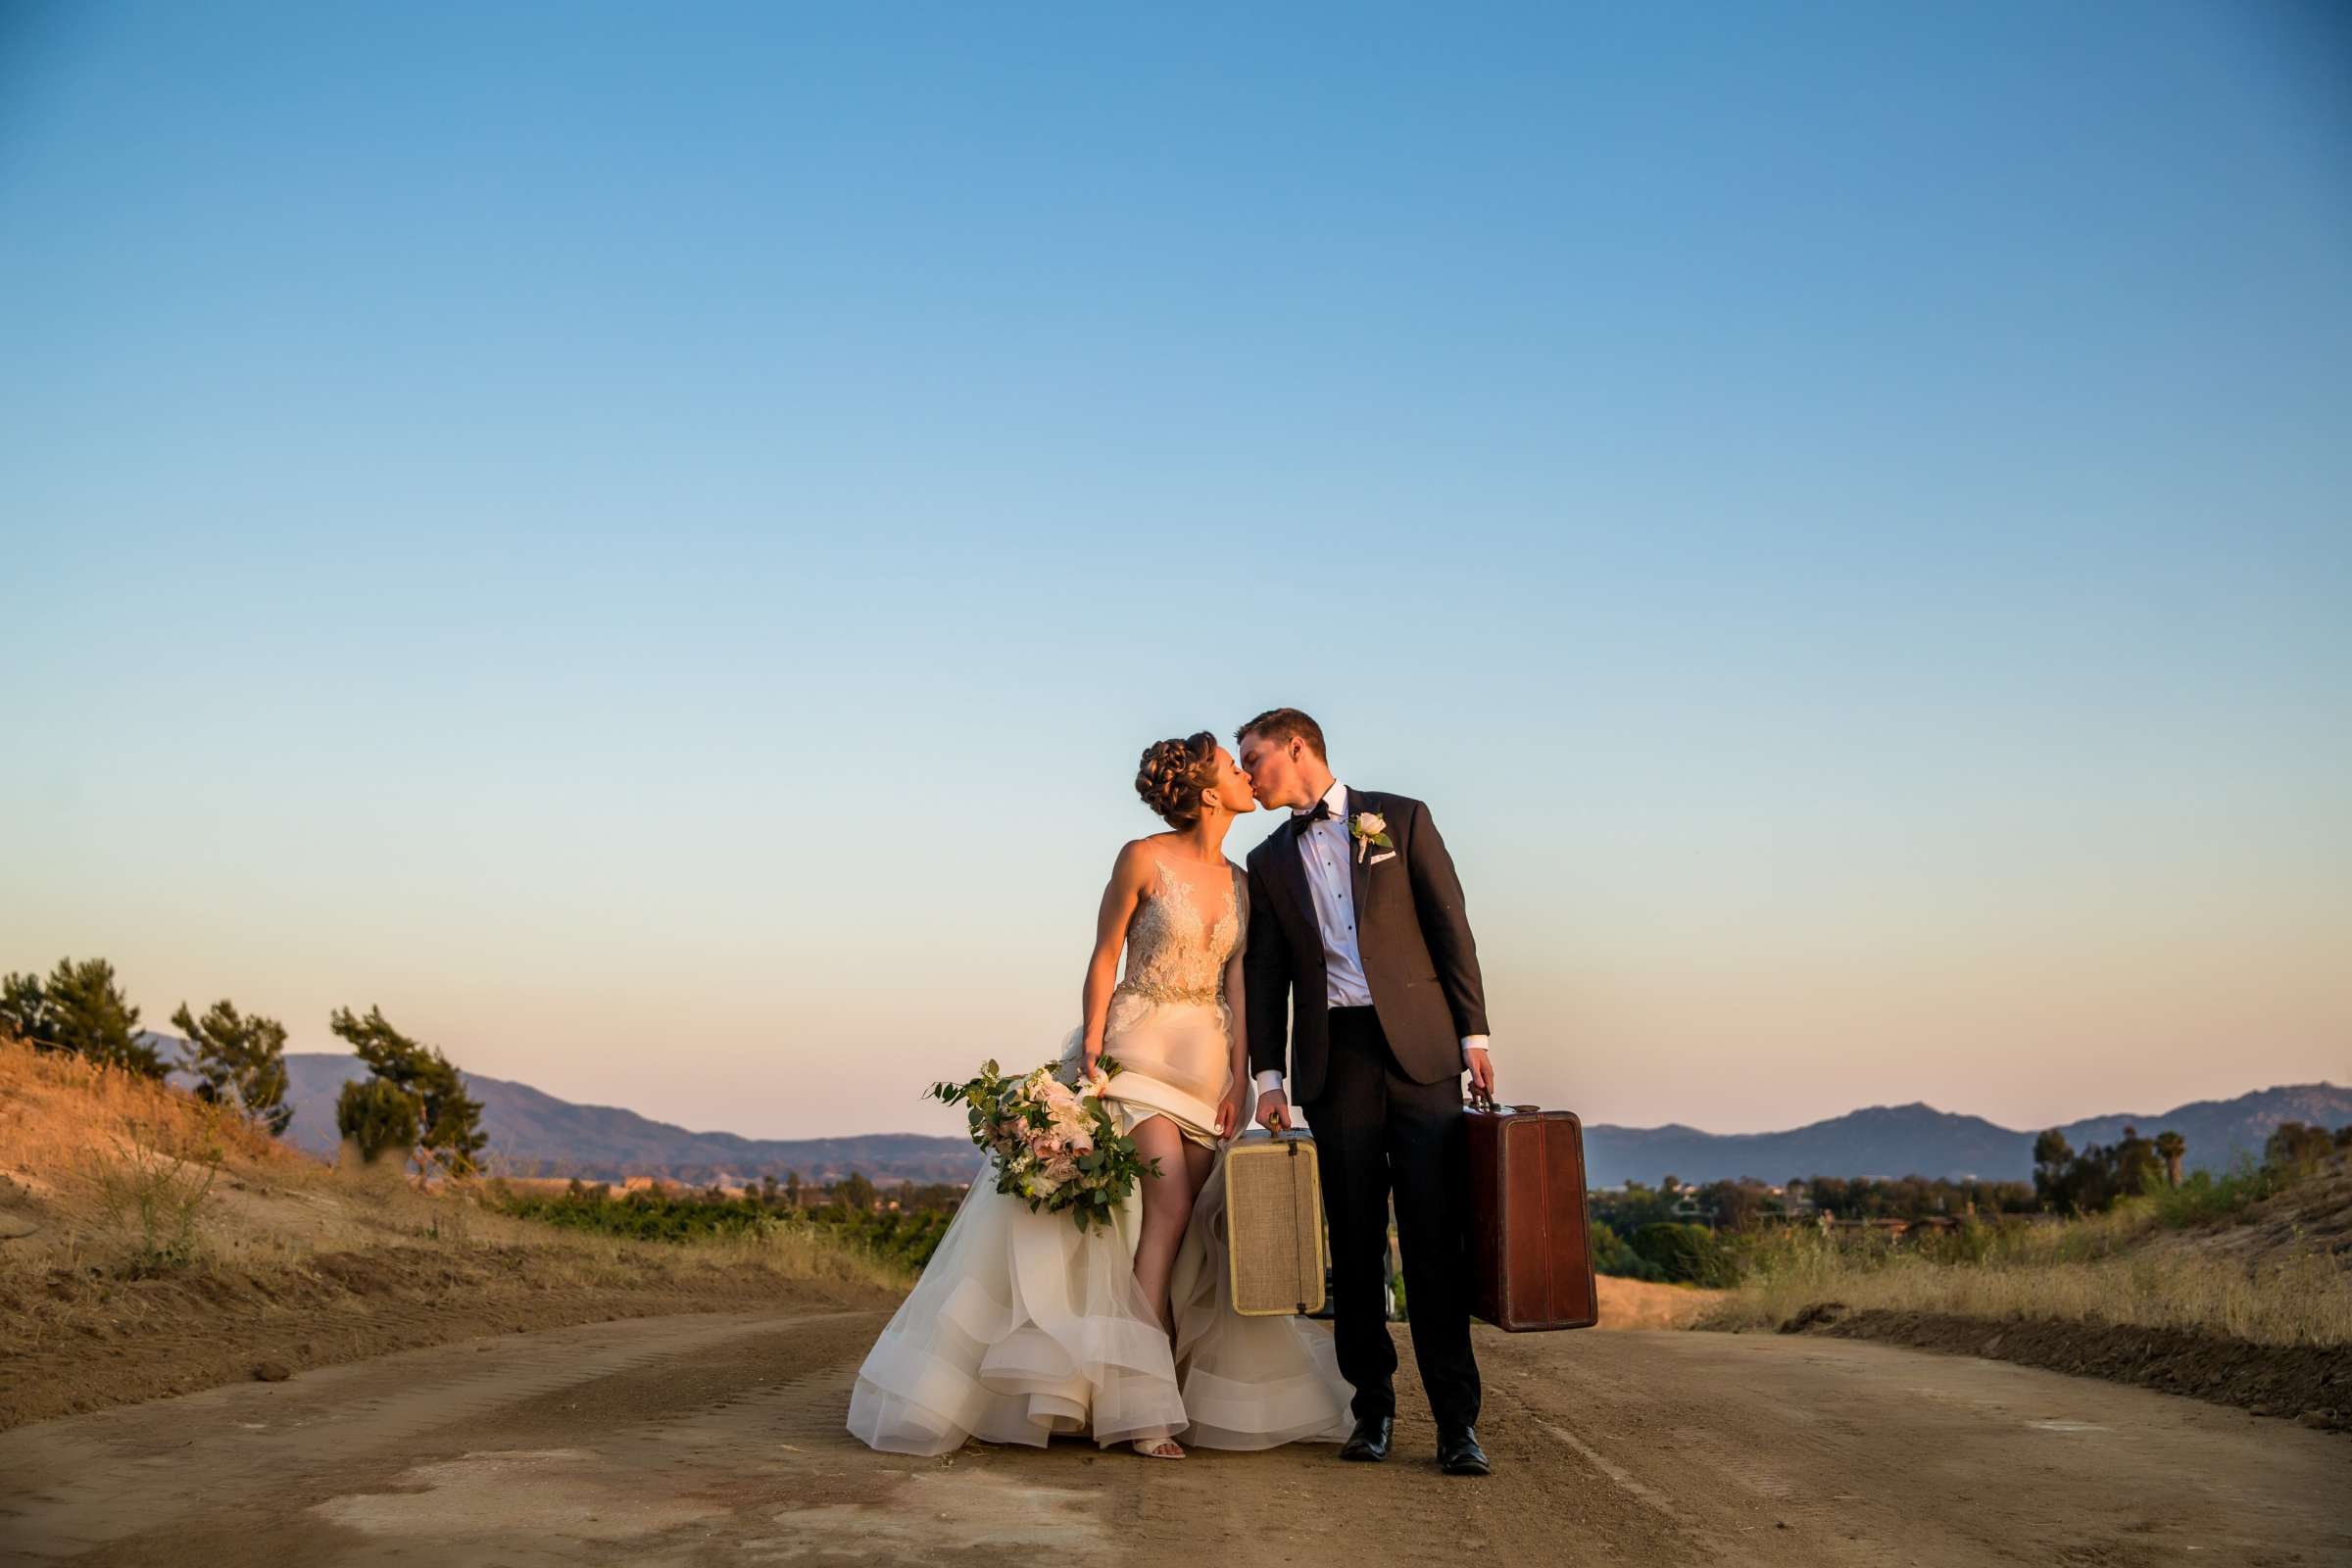 Callaway Vineyards & Winery Wedding, Natalia and Mike Wedding Photo #2 by True Photography